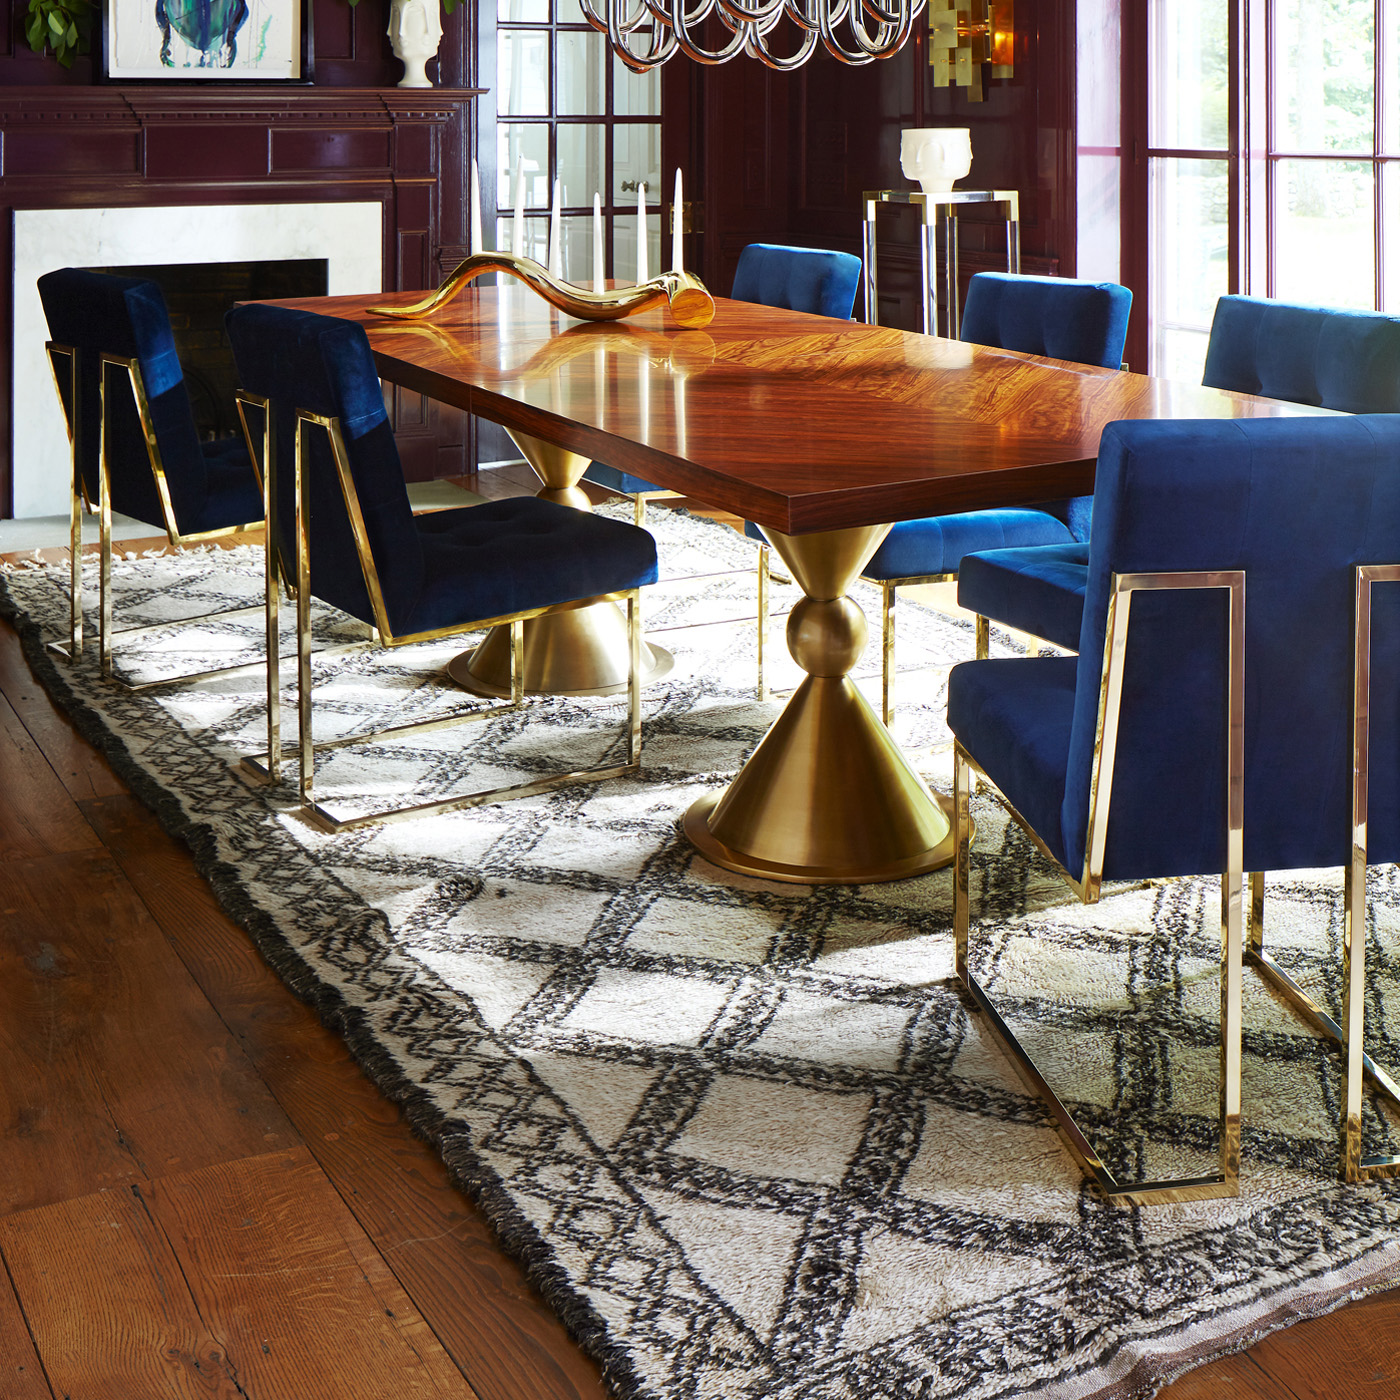 Jonathan Adler Goldfinger Dining Chair For $1,250 Vs Overstock Haute Navy  Velvet Chair For $296 @copycatchic Look For Less Budget Home Decor Design